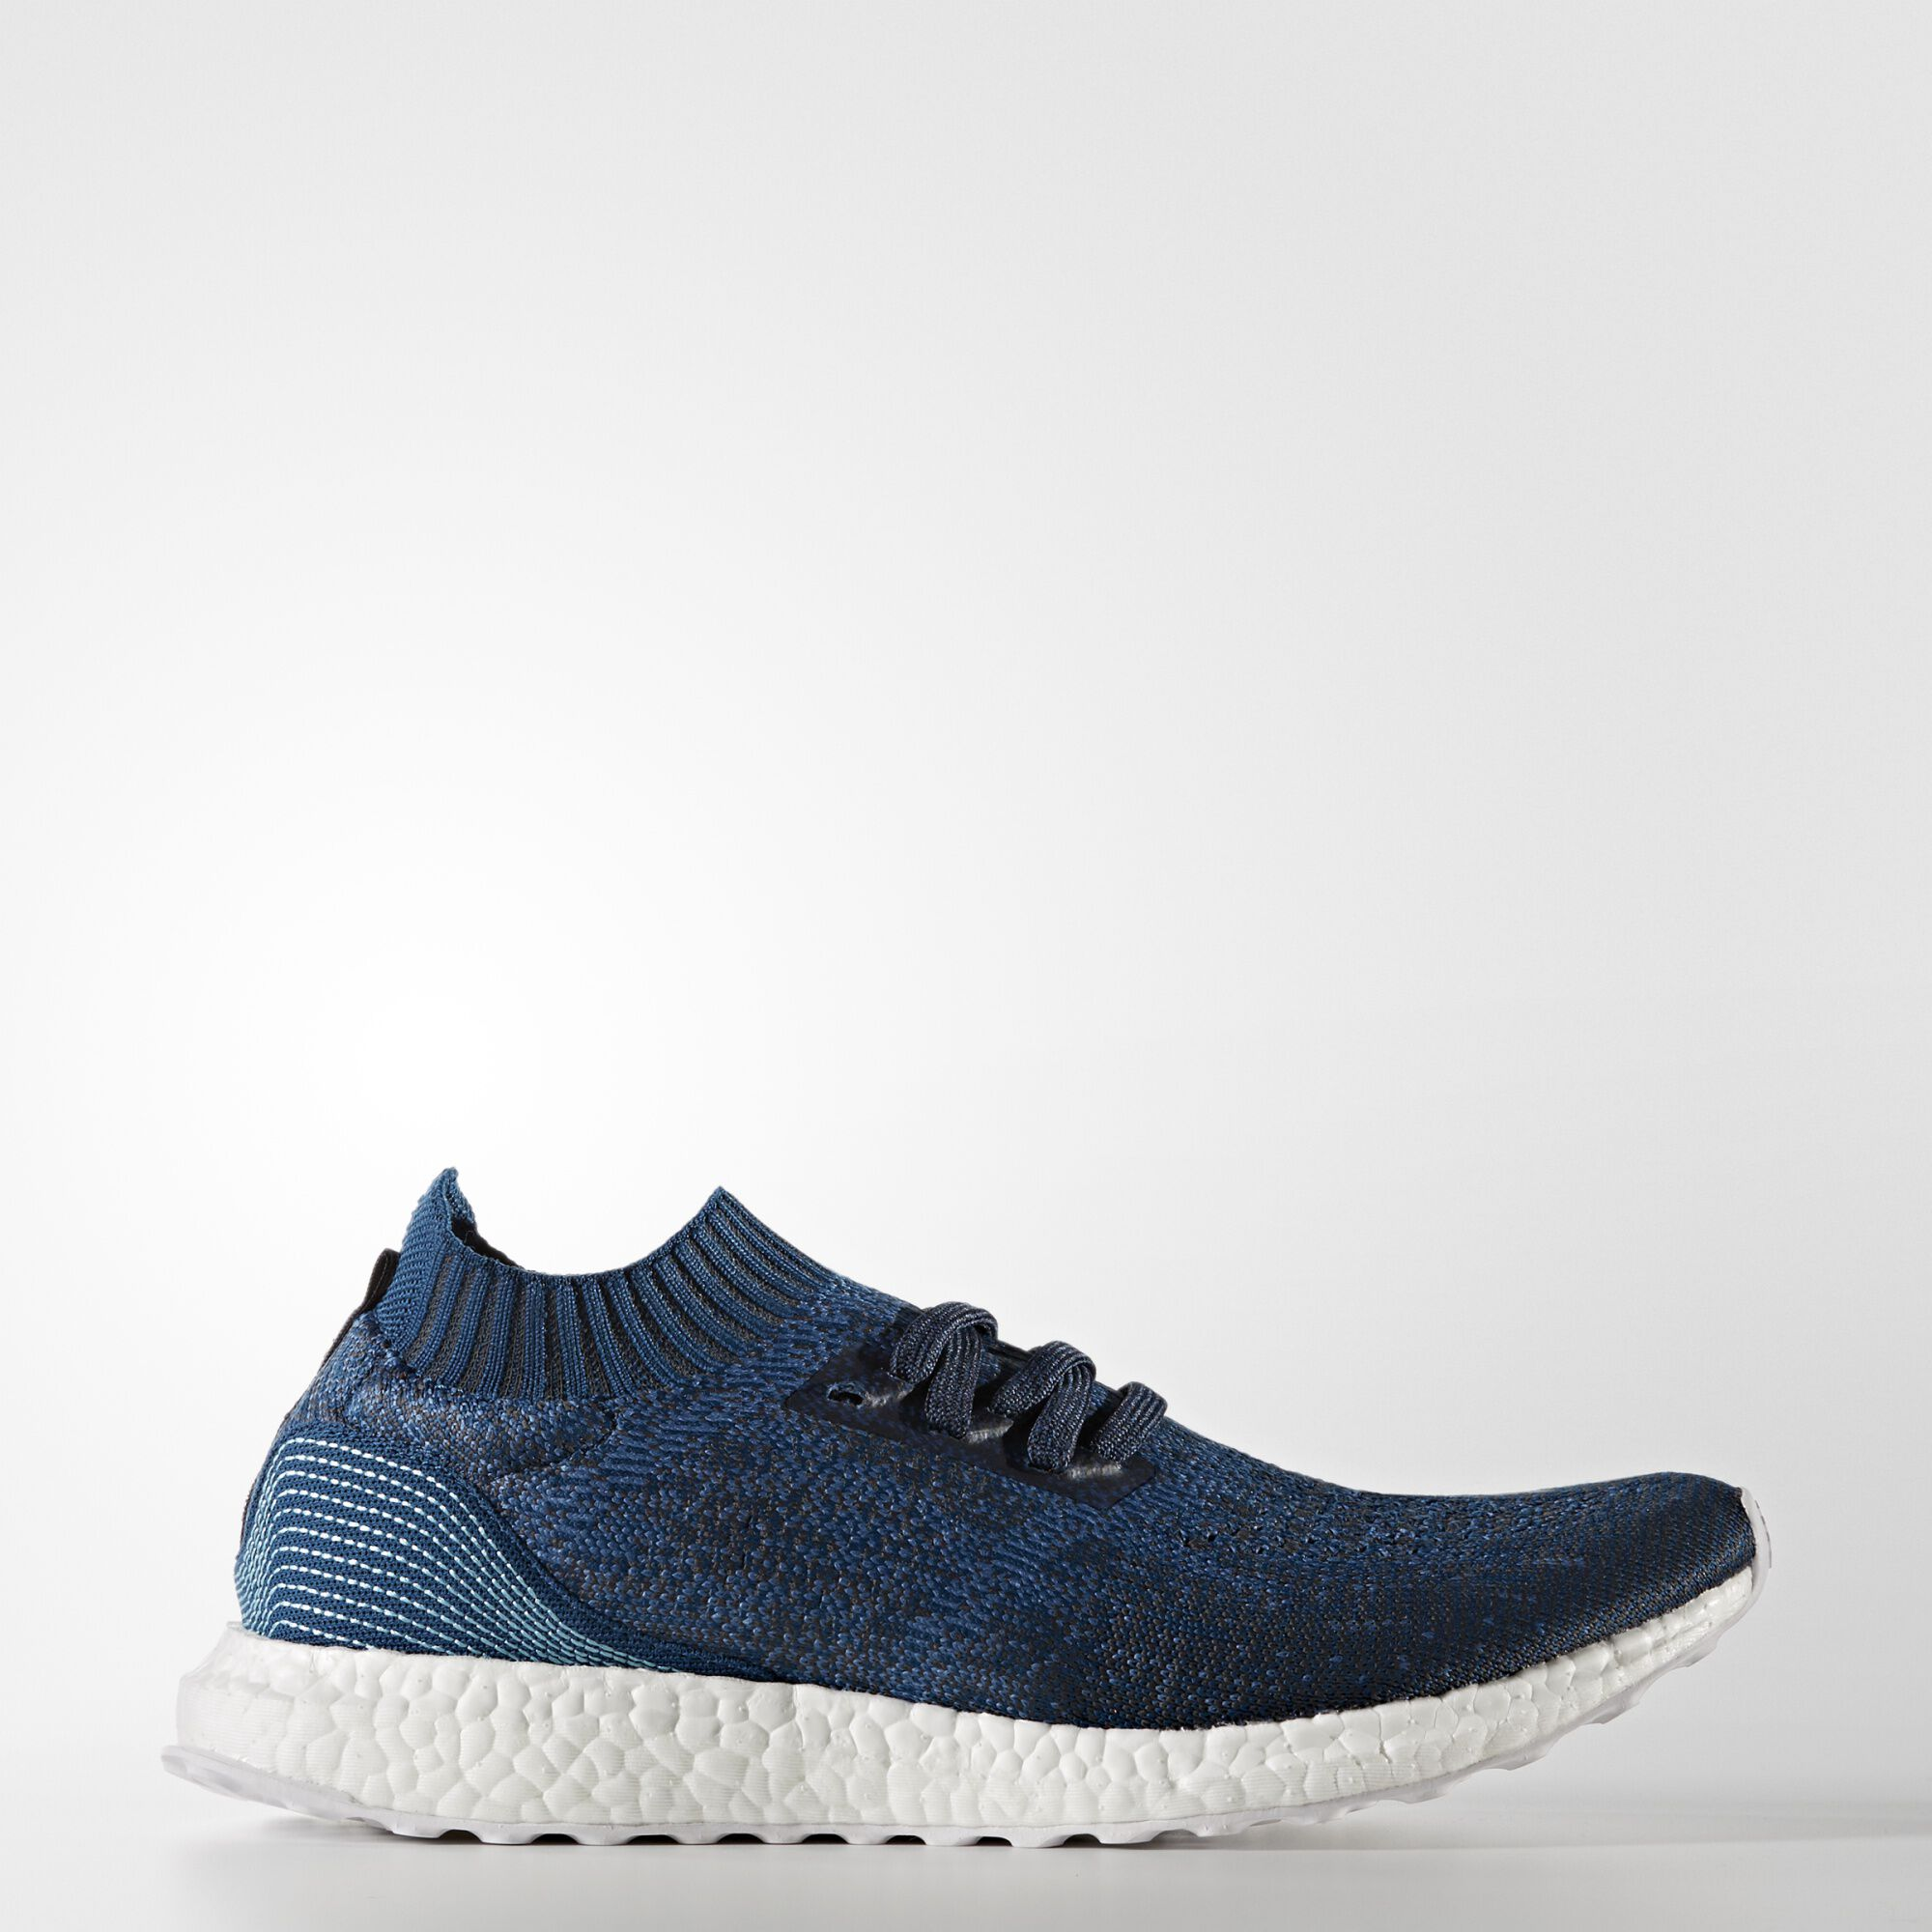 FIRST LOOK: ADIDAS ULTRABOOST UNCAGED!